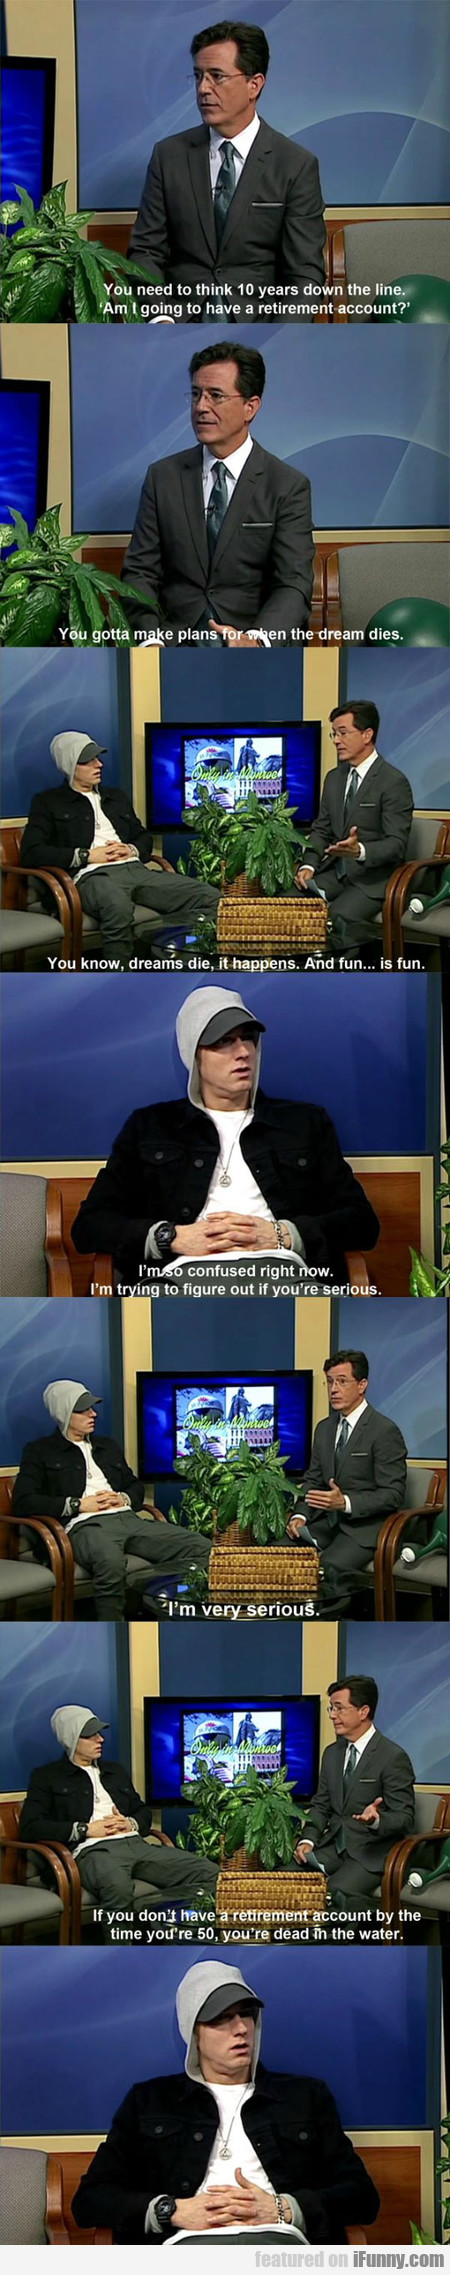 Colbert And Eminem In The Same Room